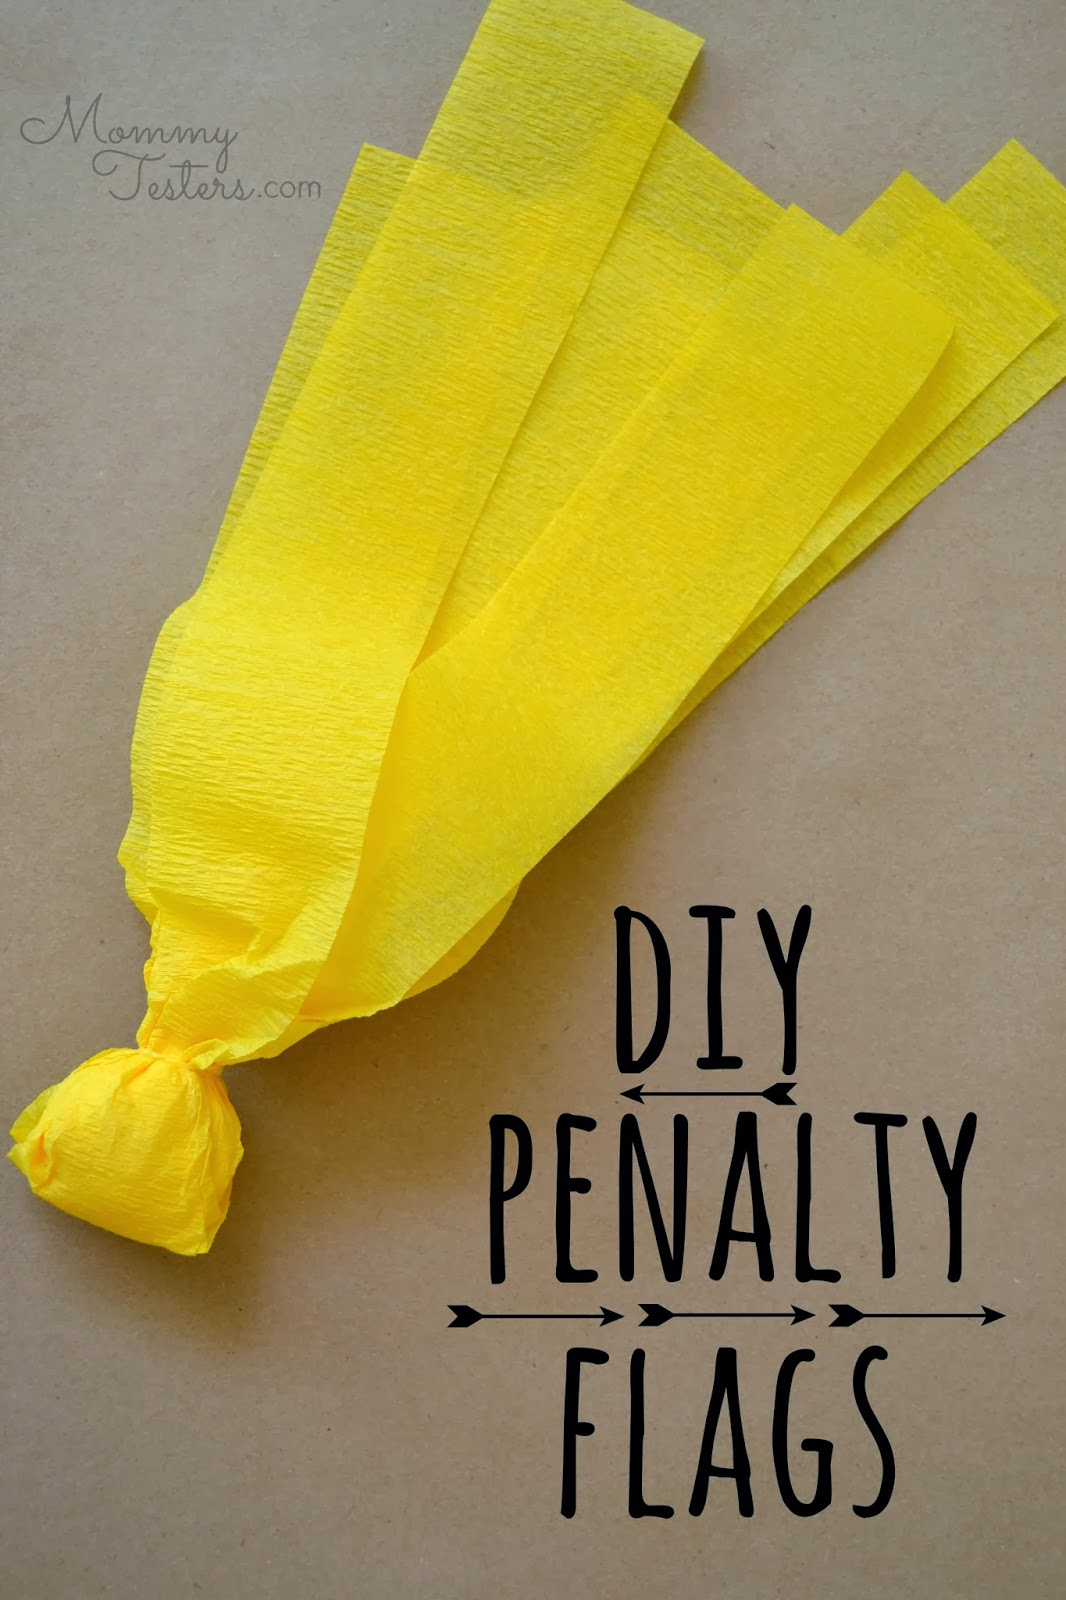 Mommy Testers, DIY Penalty Flags, Football penalty flags, How to make penalty flags, Easy penalty flags, #OneBuyForAll #cbias #shop